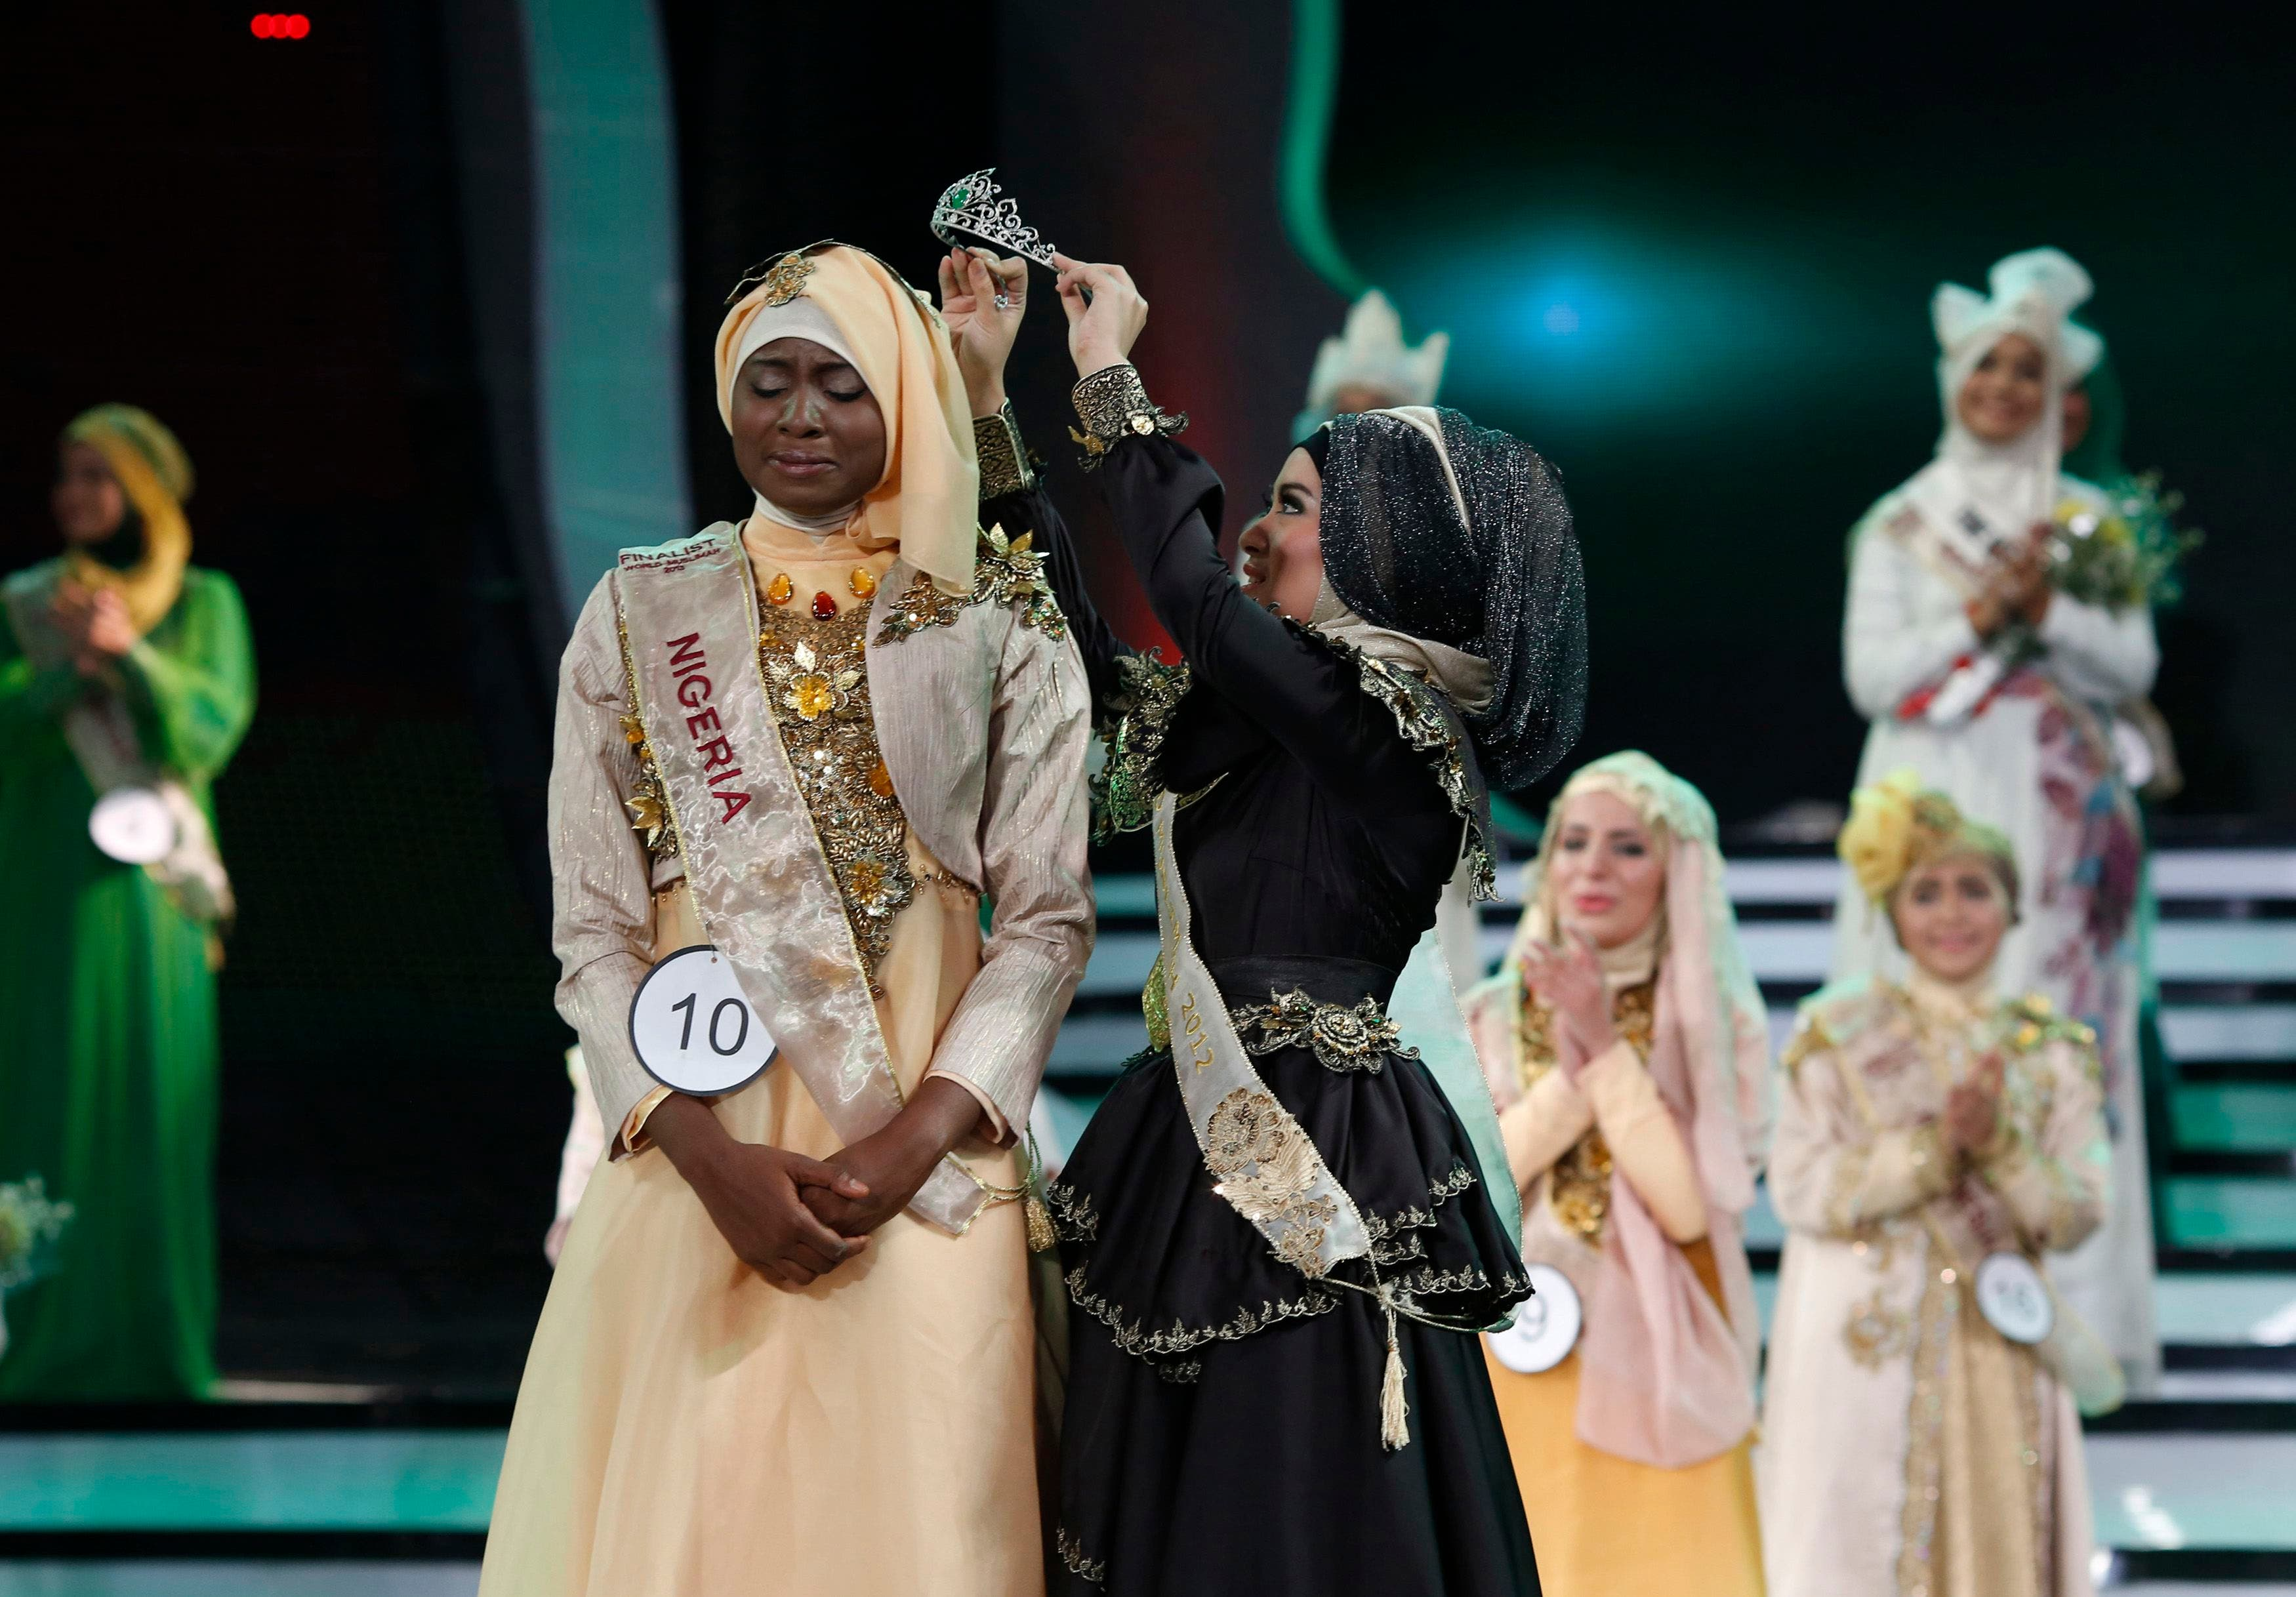 Nigerian Obabiyi Aishah Ajibola is crowned by her predecessor World Muslimah 2012 Nina Septiani of Indonesia (R) after being named World Muslimah 2013 during the third Annual Award of World Muslimah in Jakarta Sept. 18, 2013. (Reuters)